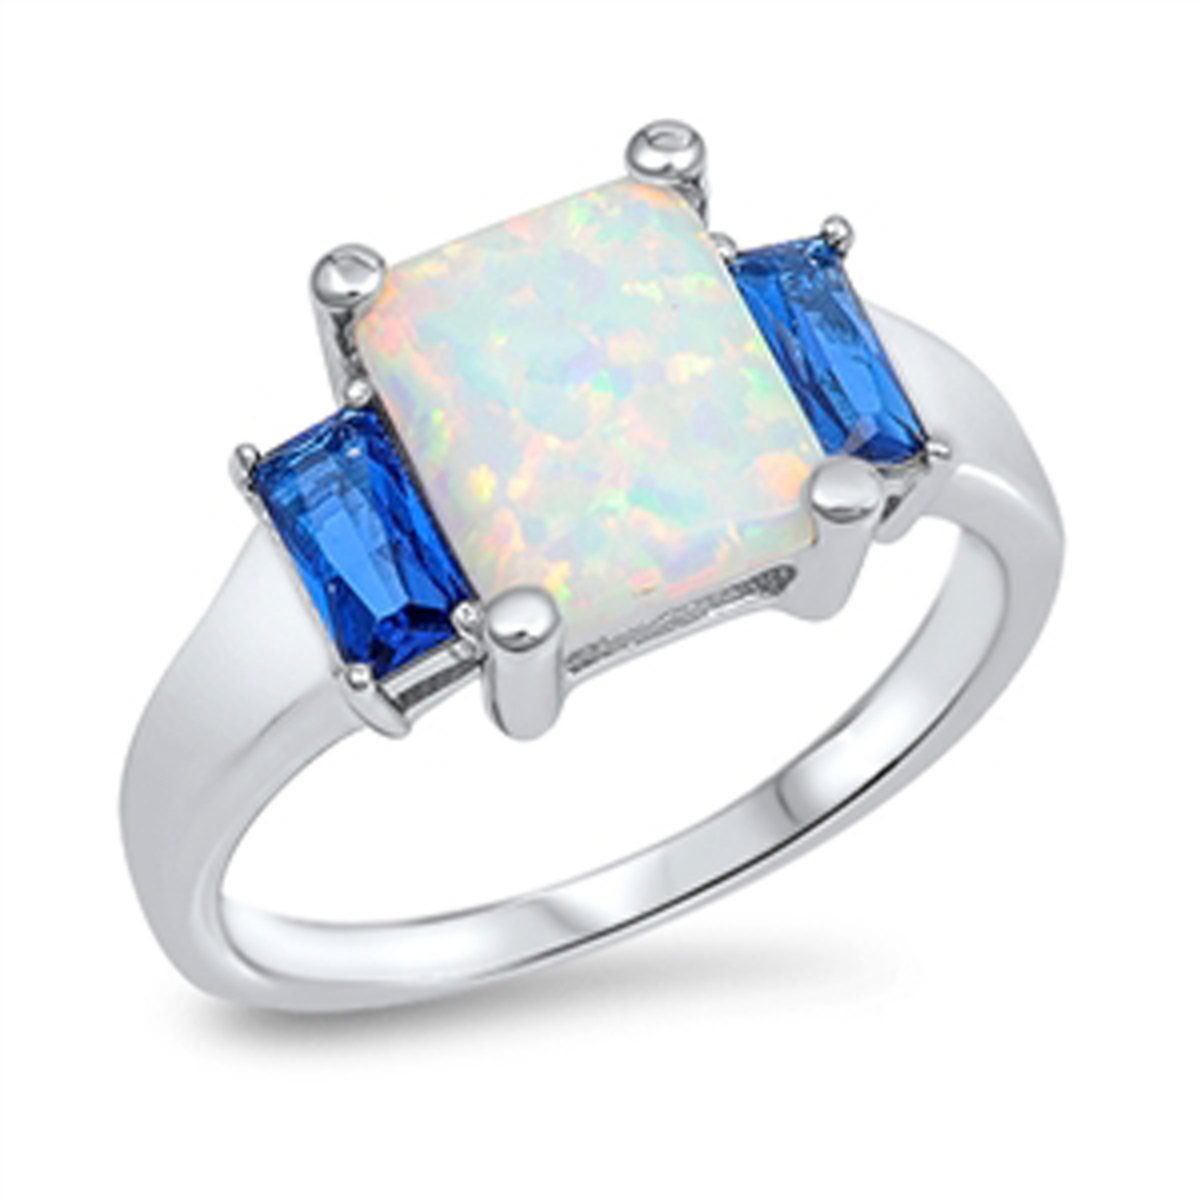 Sterling Silver Shiny Women's Flawless Blue Cubic Zirconia White Simulated Opal Wedding Ring (Sizes 4-10) (Ring Size 9)